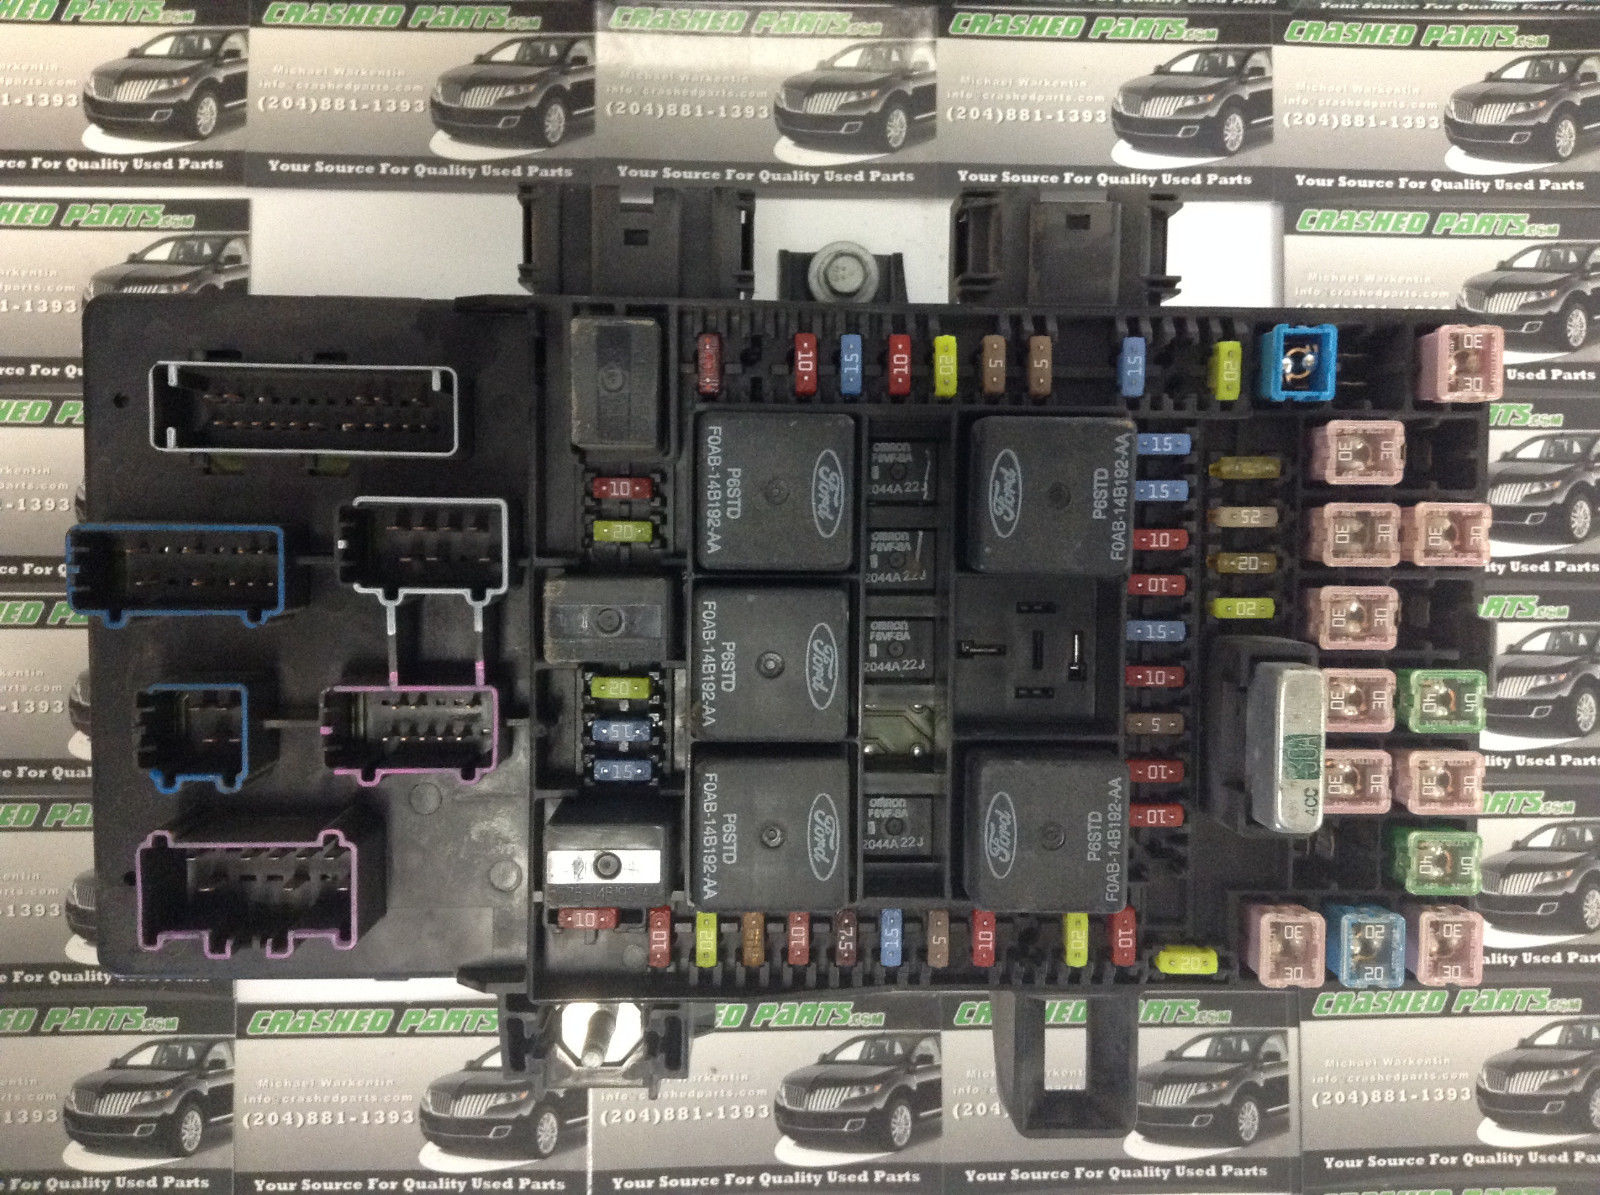 Ah Fuse Box Another Blog About Wiring Diagram Ts Astra Location 14a067 Holden